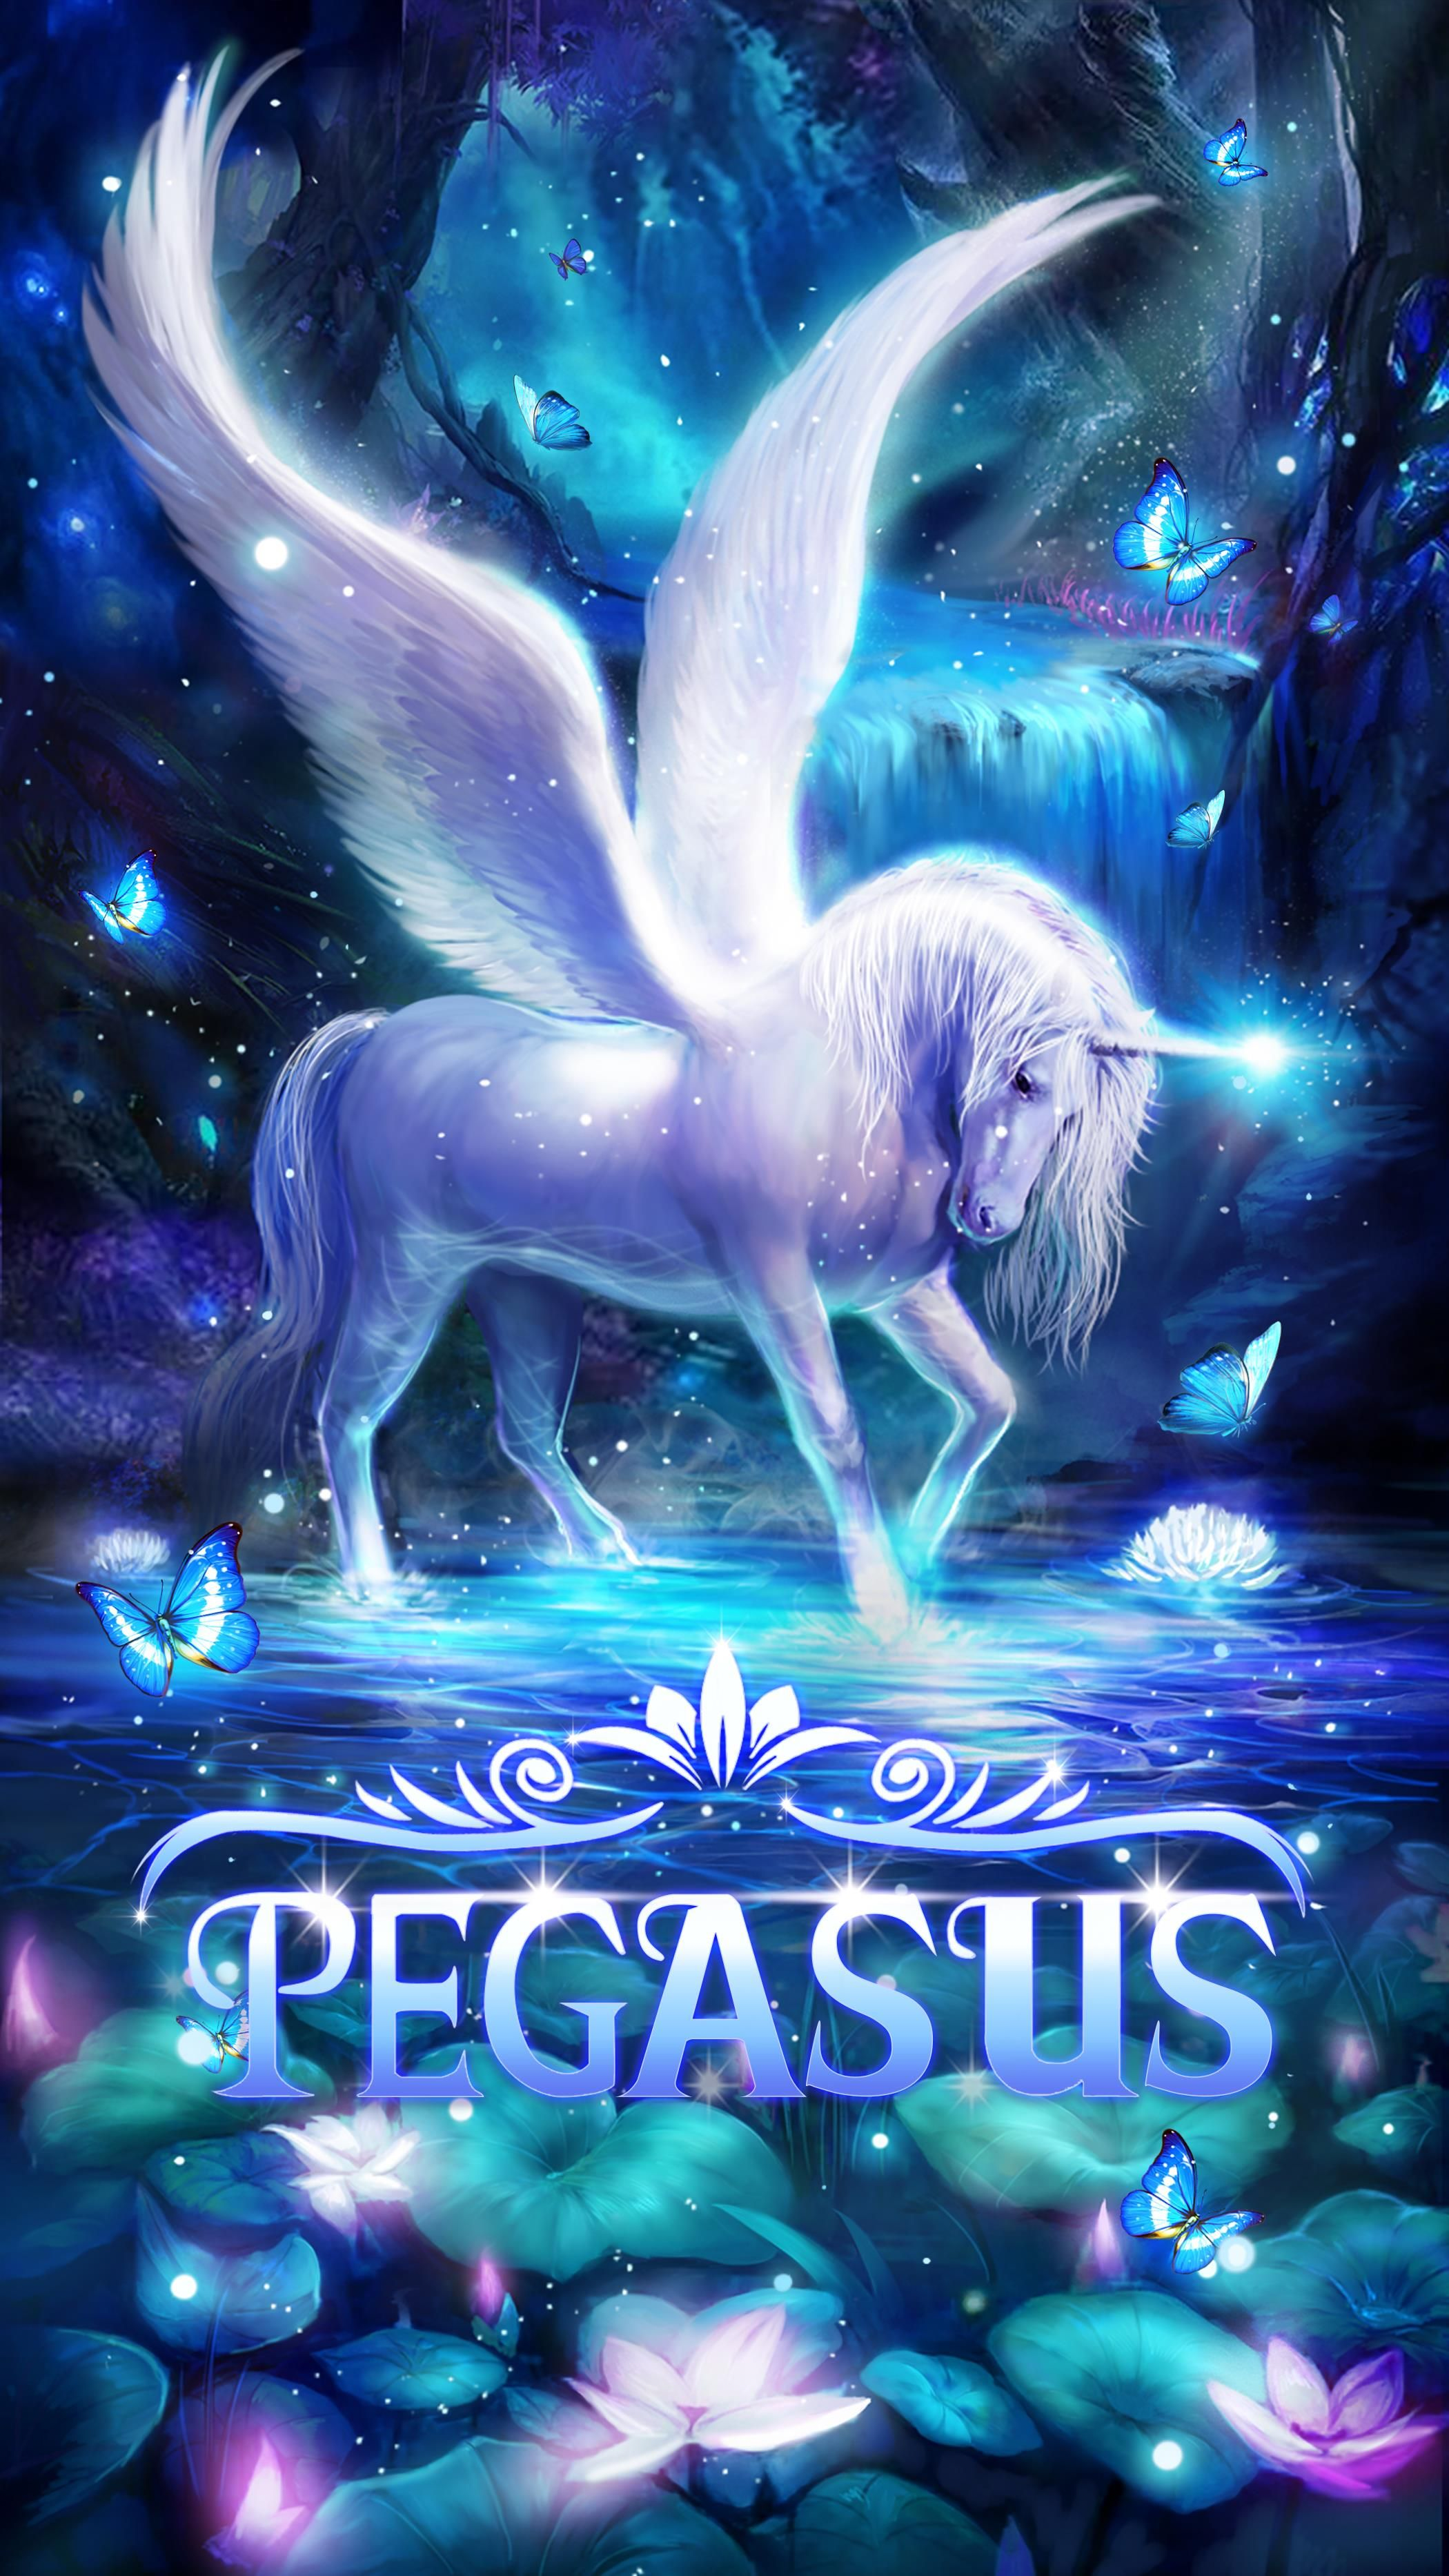 Pegasus Live Wallpaper Unicorn Alicorn Android With Flying Fireflies Blue Butterflies